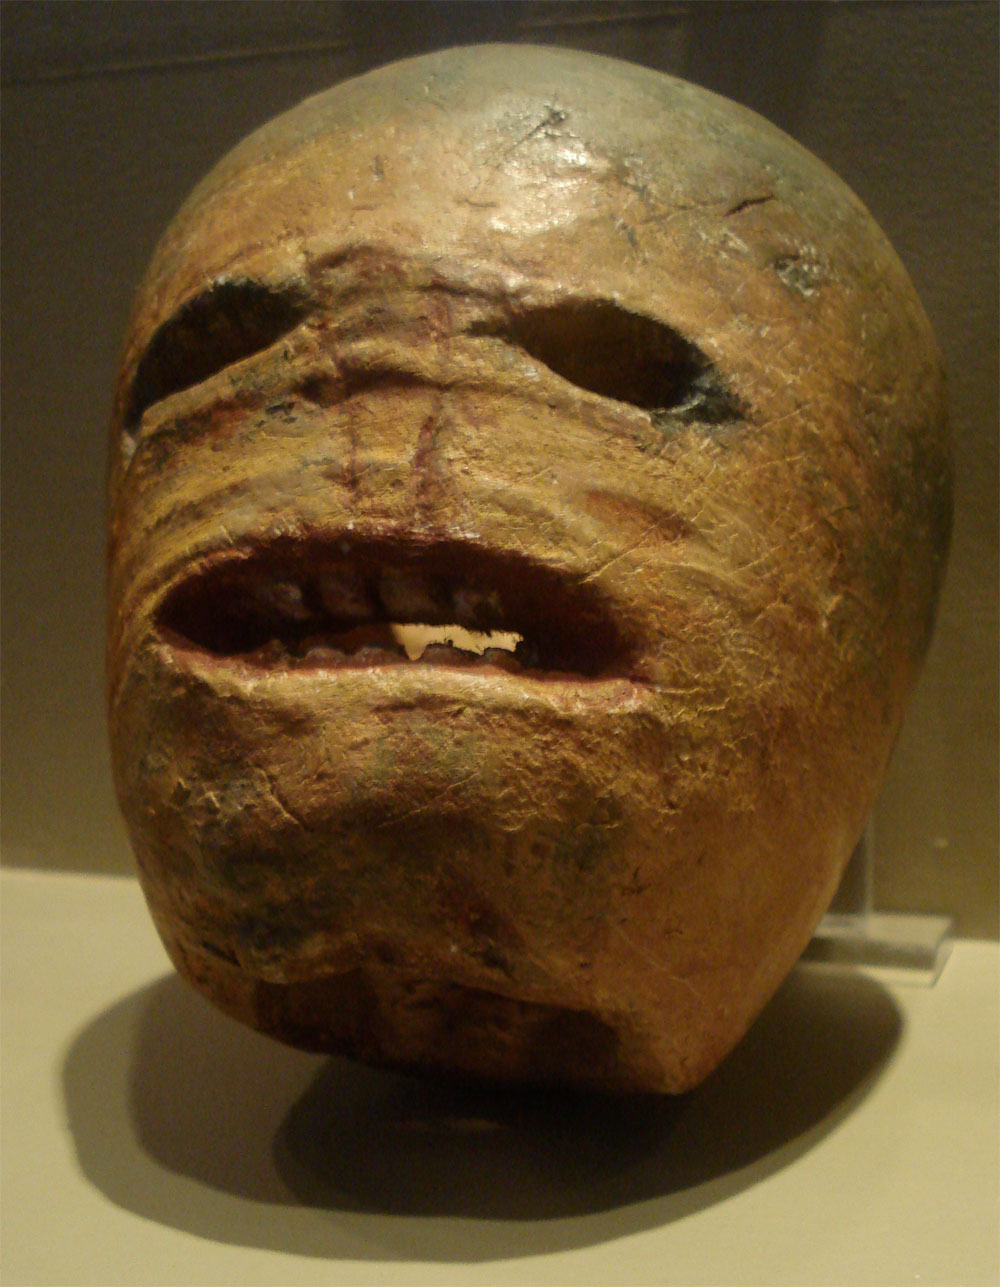 https://upload.wikimedia.org/wikipedia/commons/3/30/Traditional_Irish_halloween_Jack-o%27-lantern.jpg